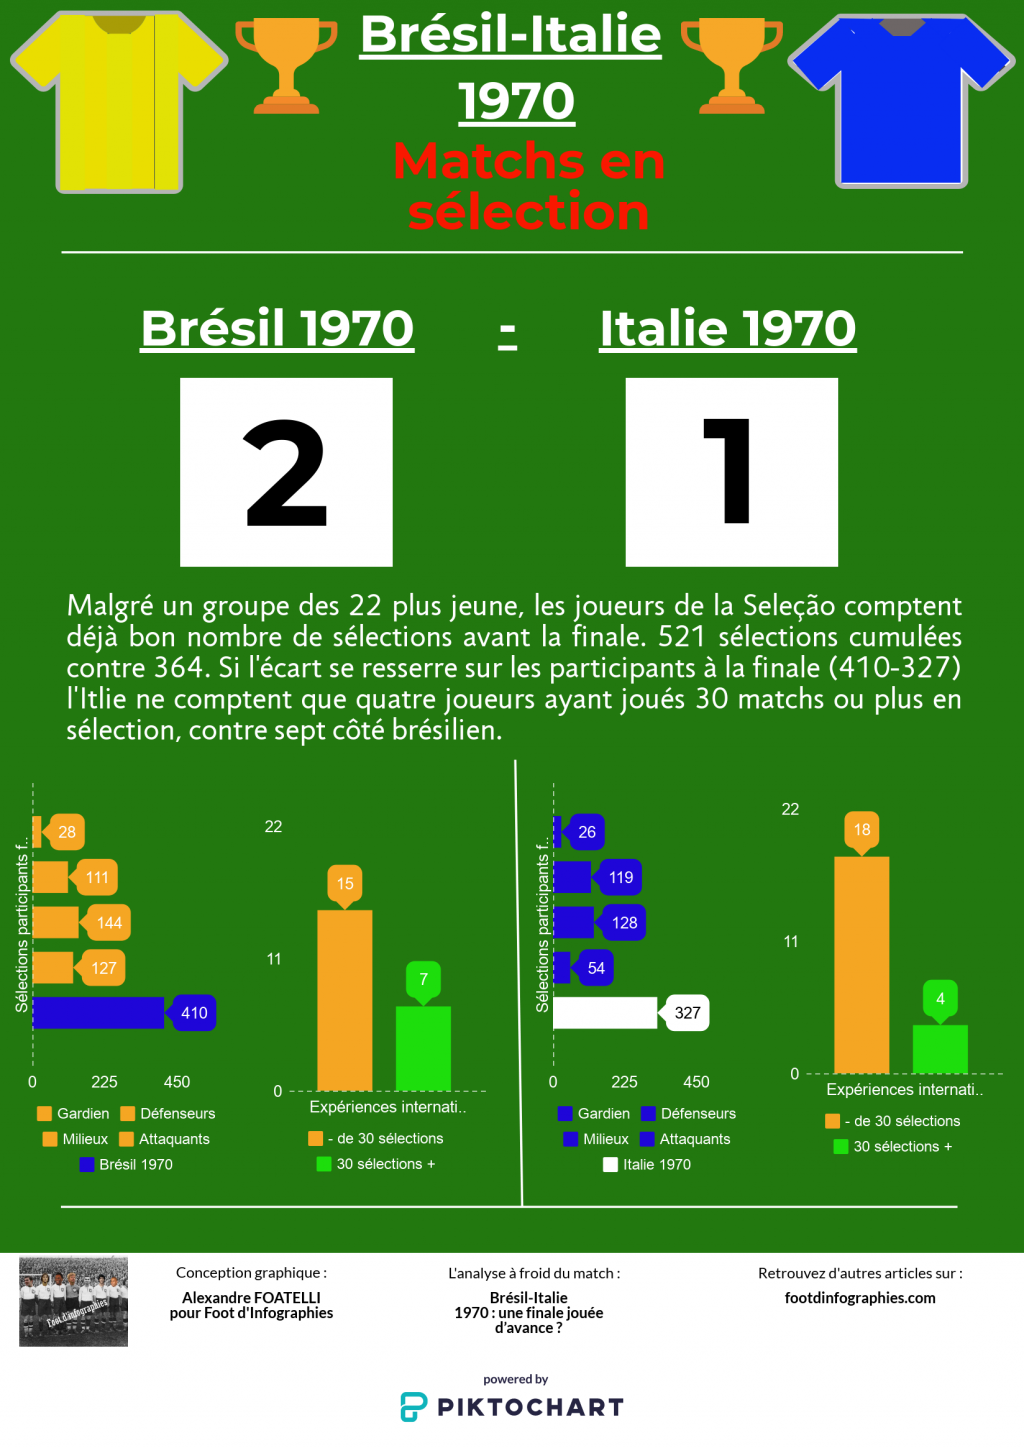 replay-game-bresil-italie-1970-matchs-en-sélection-foot-dinfographies